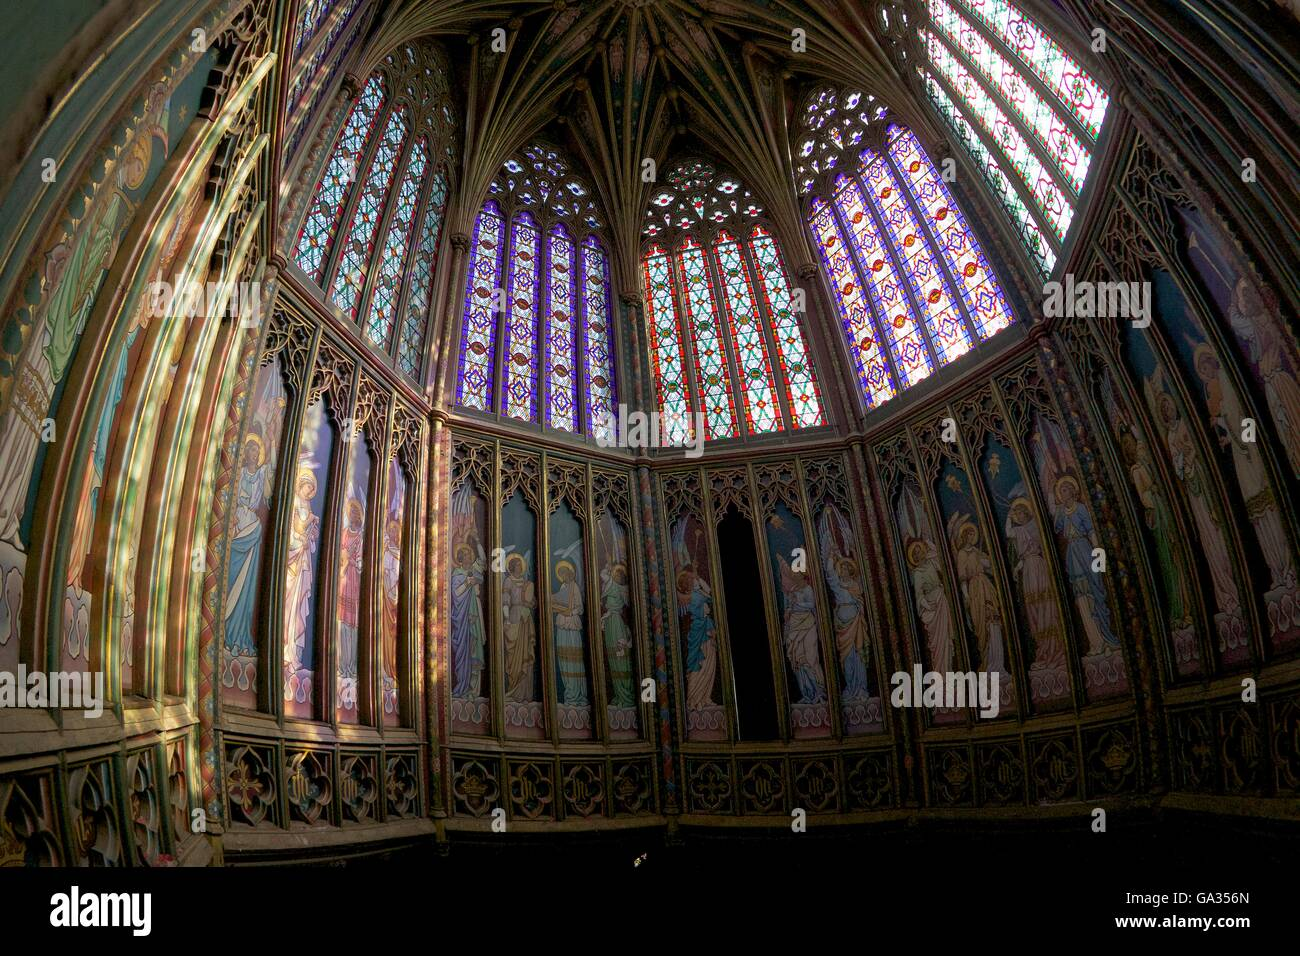 Ely Cathedral Interior, lantern,  Cambridgeshire England GB UK - Stock Image